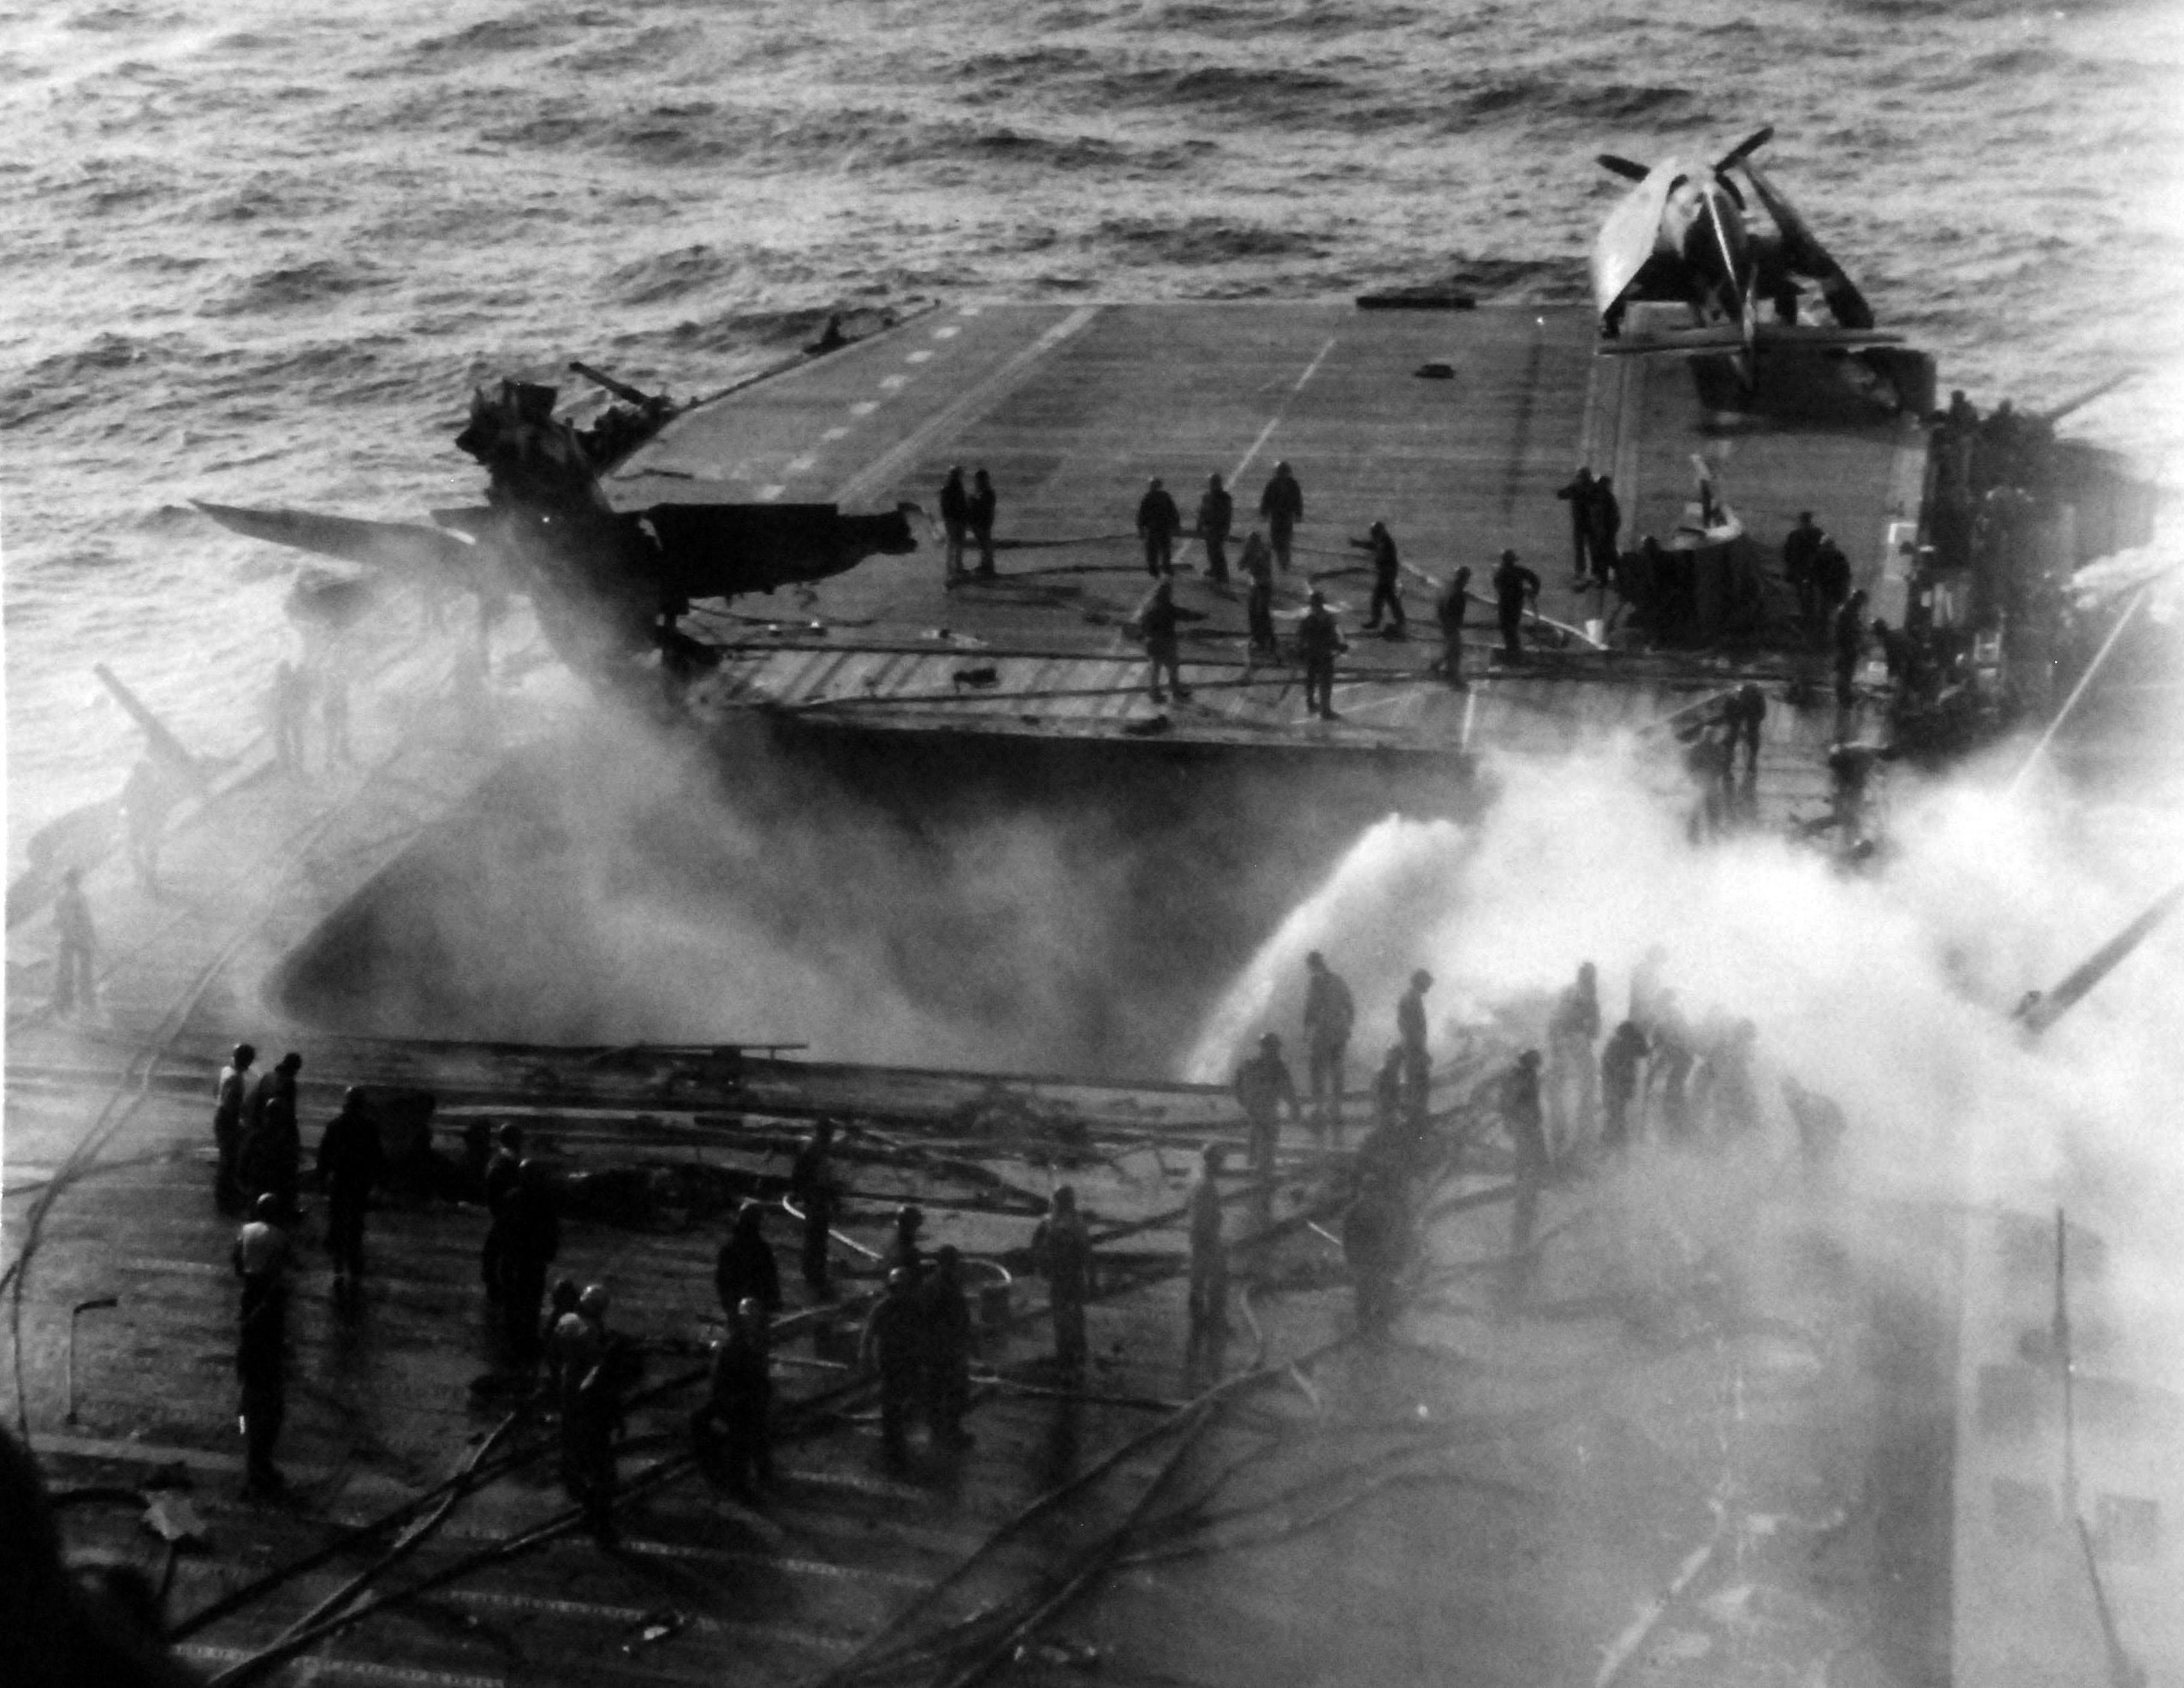 uss enterprise  cv 6  burning as a result of a japanese kamikaze attack on 14 may 1945